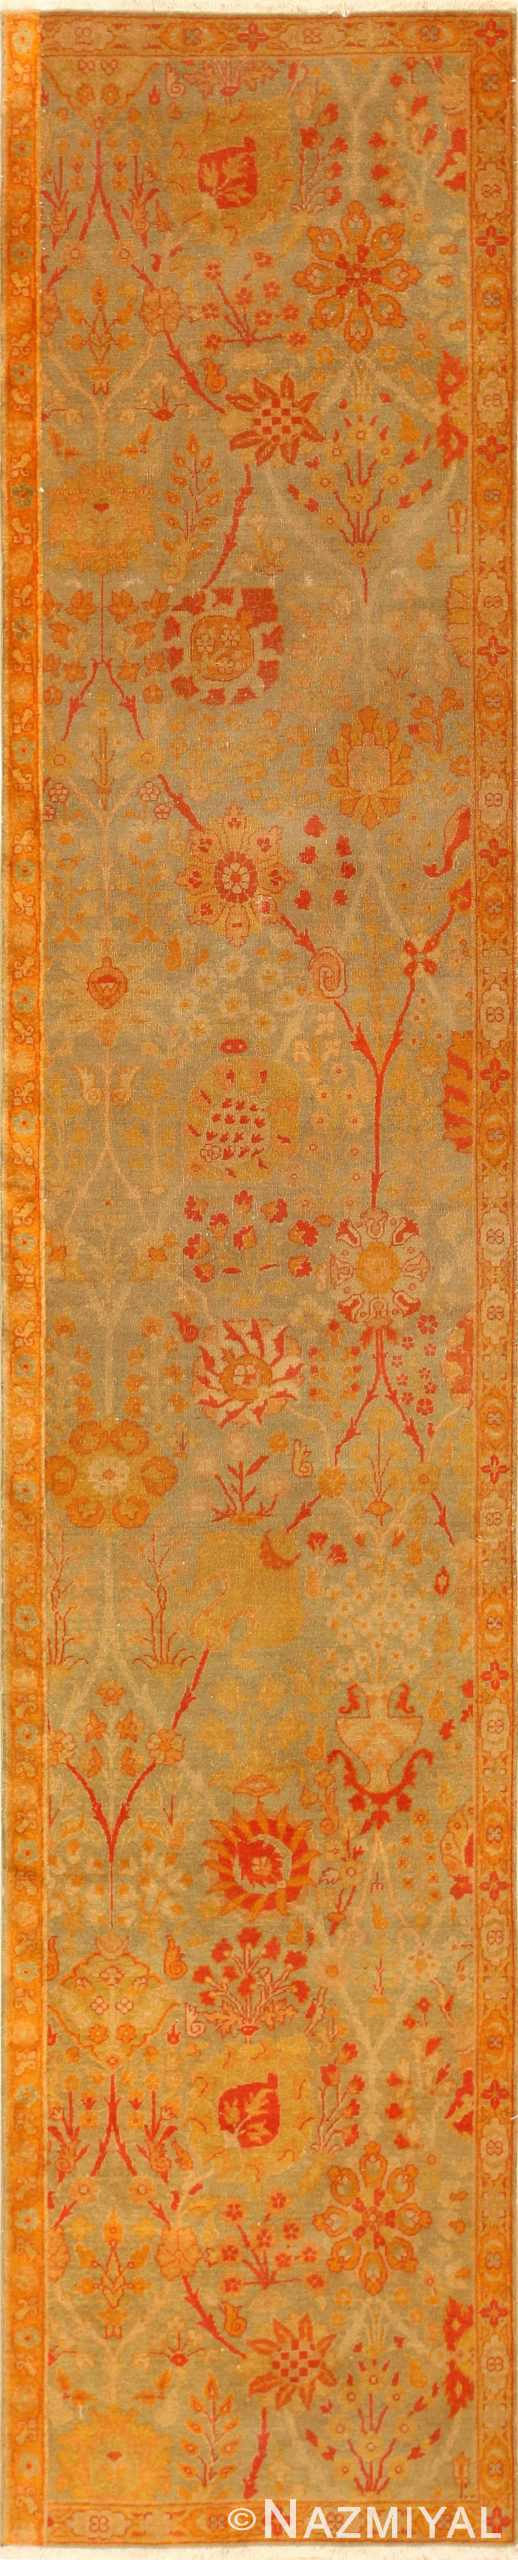 Antique Indian Runner Rug 50496 Detail/Large View